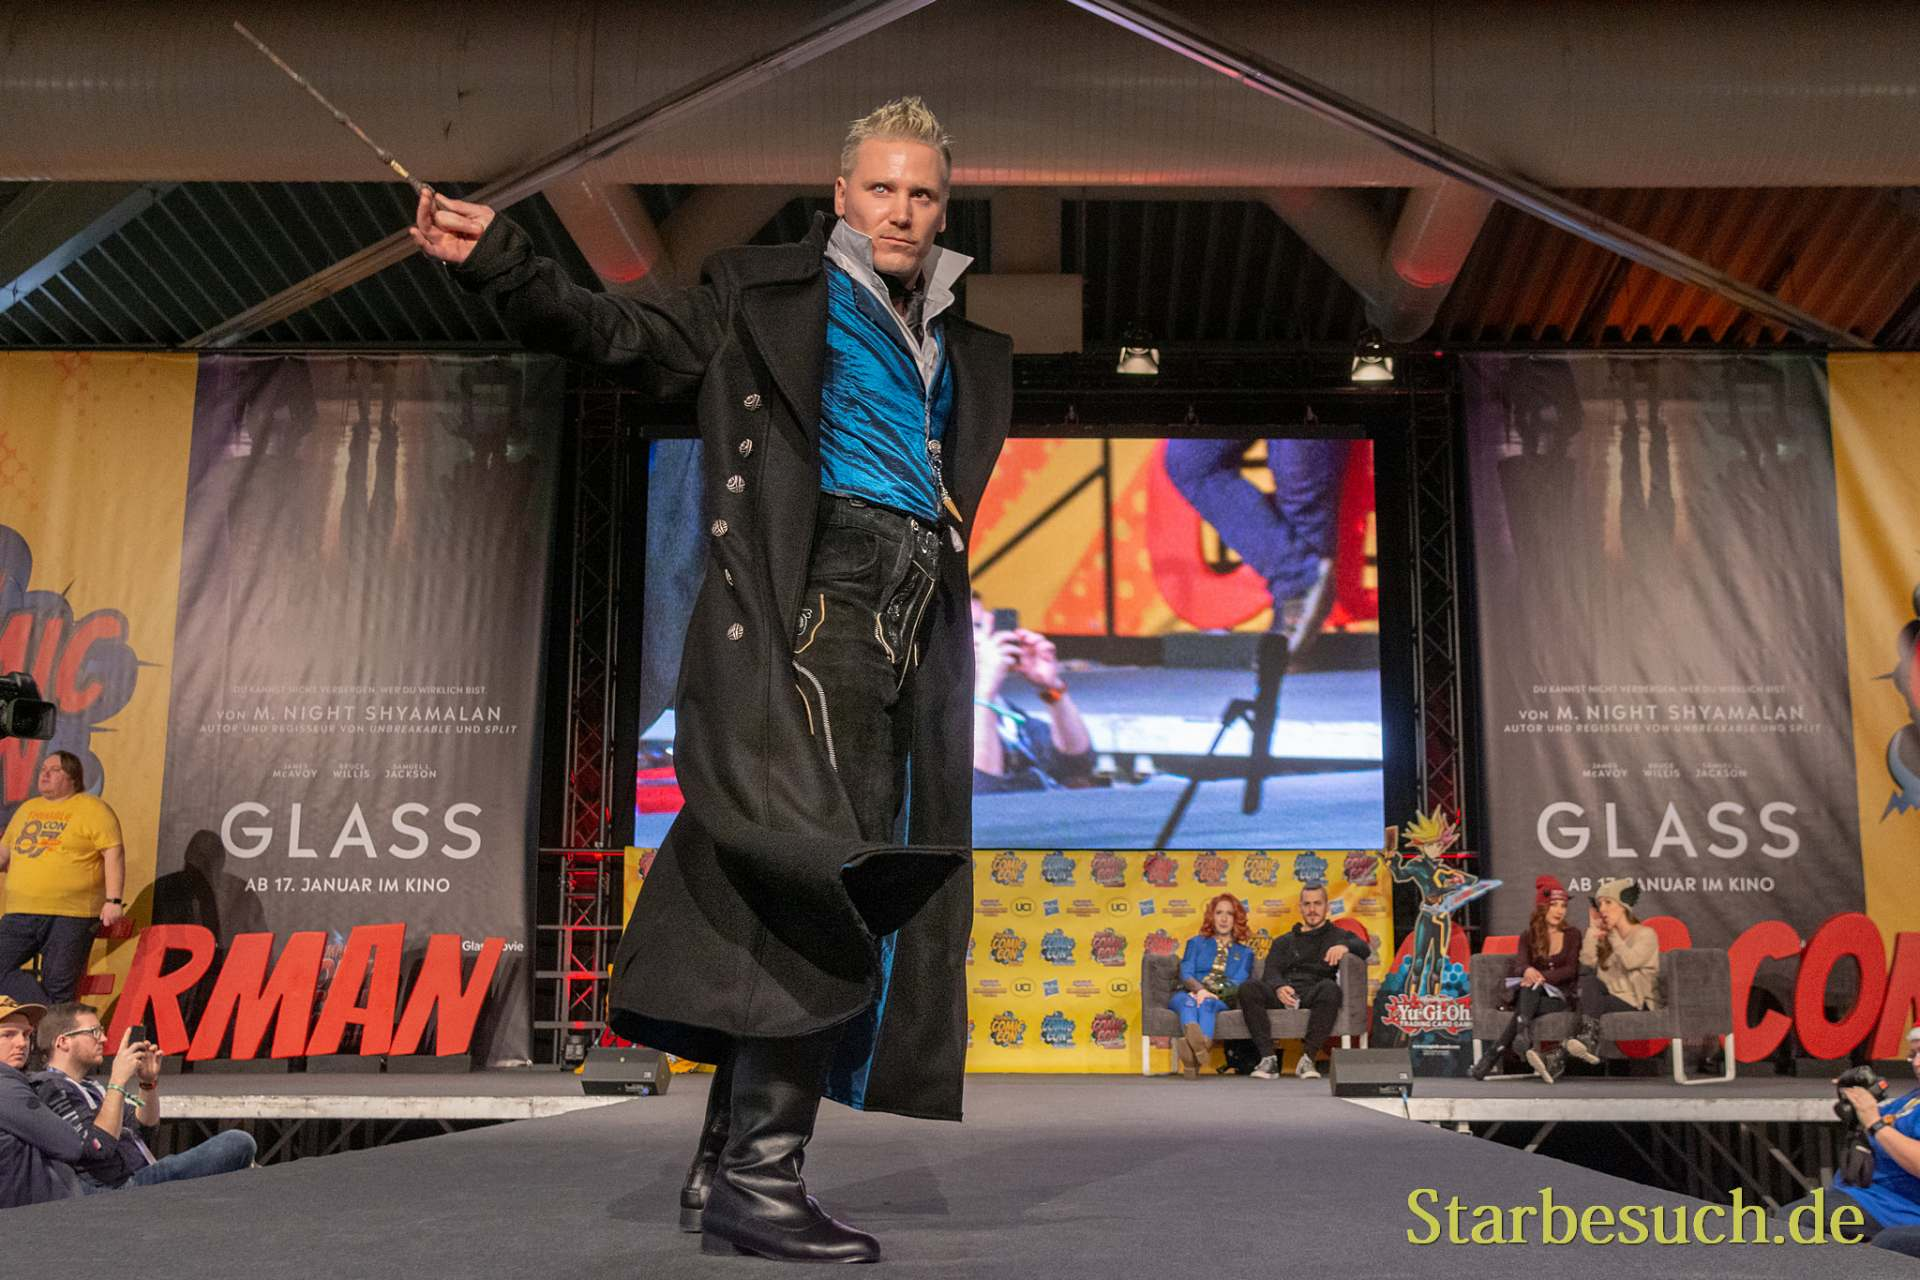 DORTMUND, GERMANY - December 1st 2018: Cosplayer portrays the character Gellert Grindelwald from Fantastic Beasts at German Comic Con Dortmund, a two day fan convention